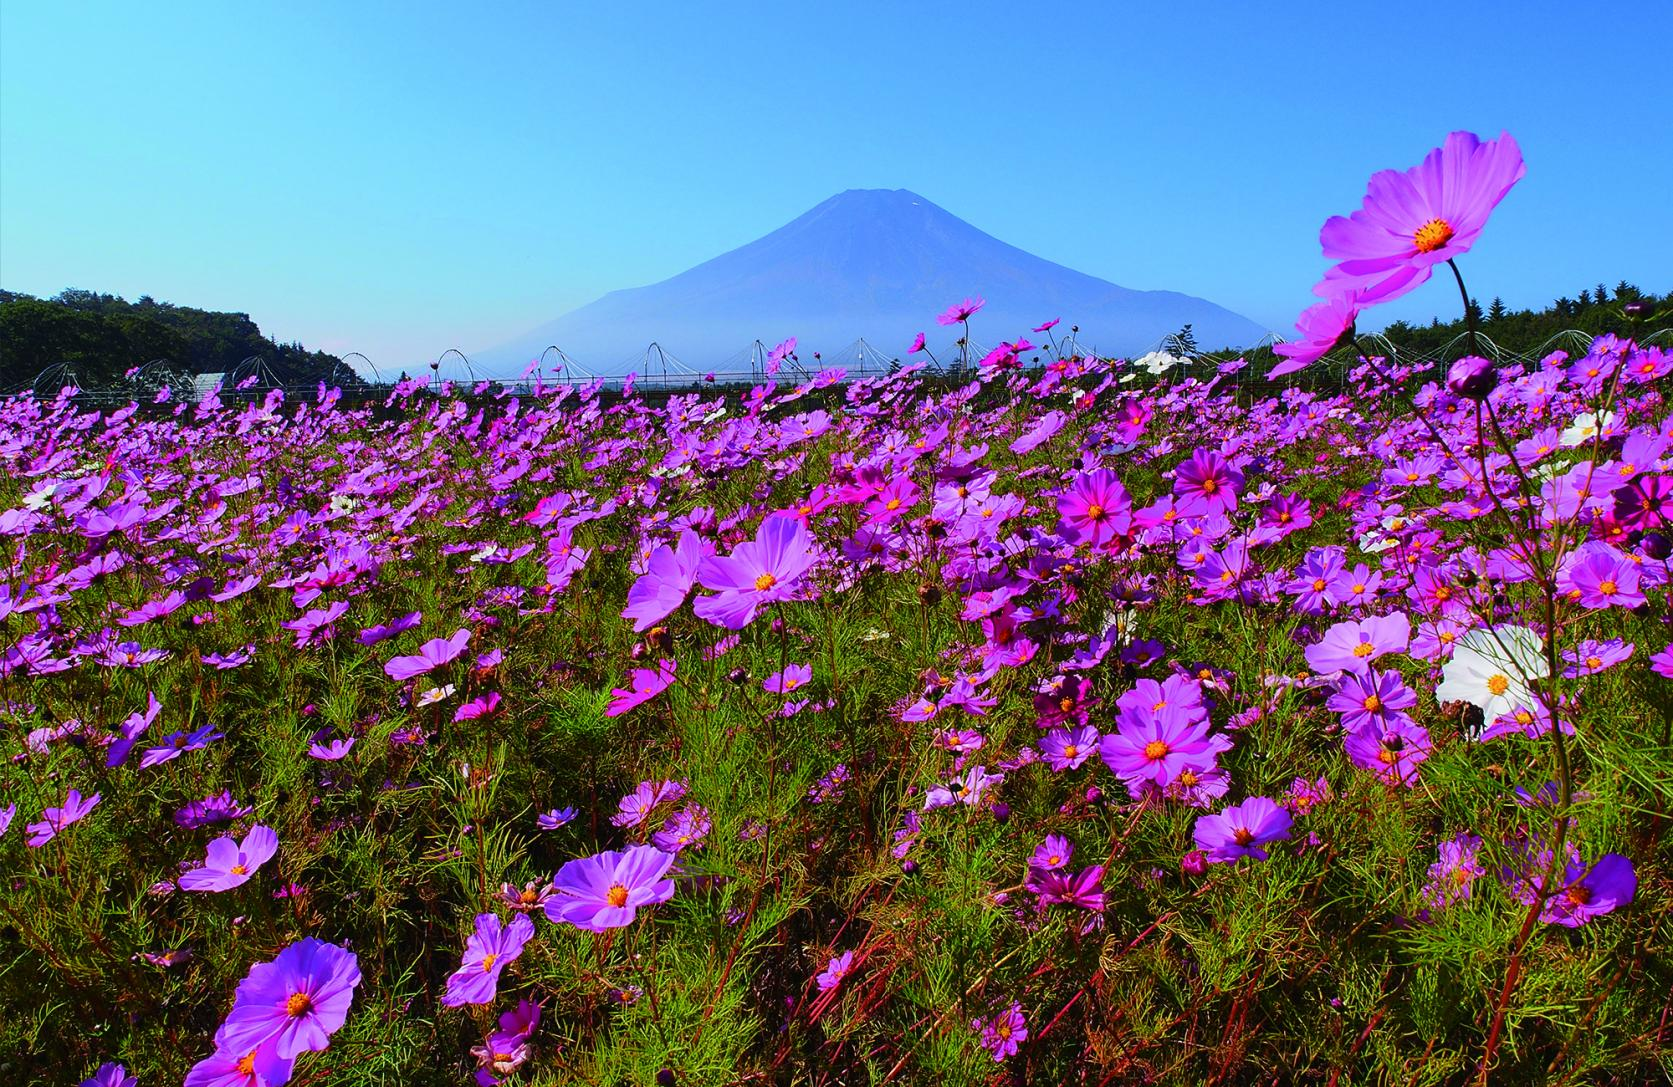 We will Take You to the Best Viewing Points to Photograph Mt. Fuji.-1